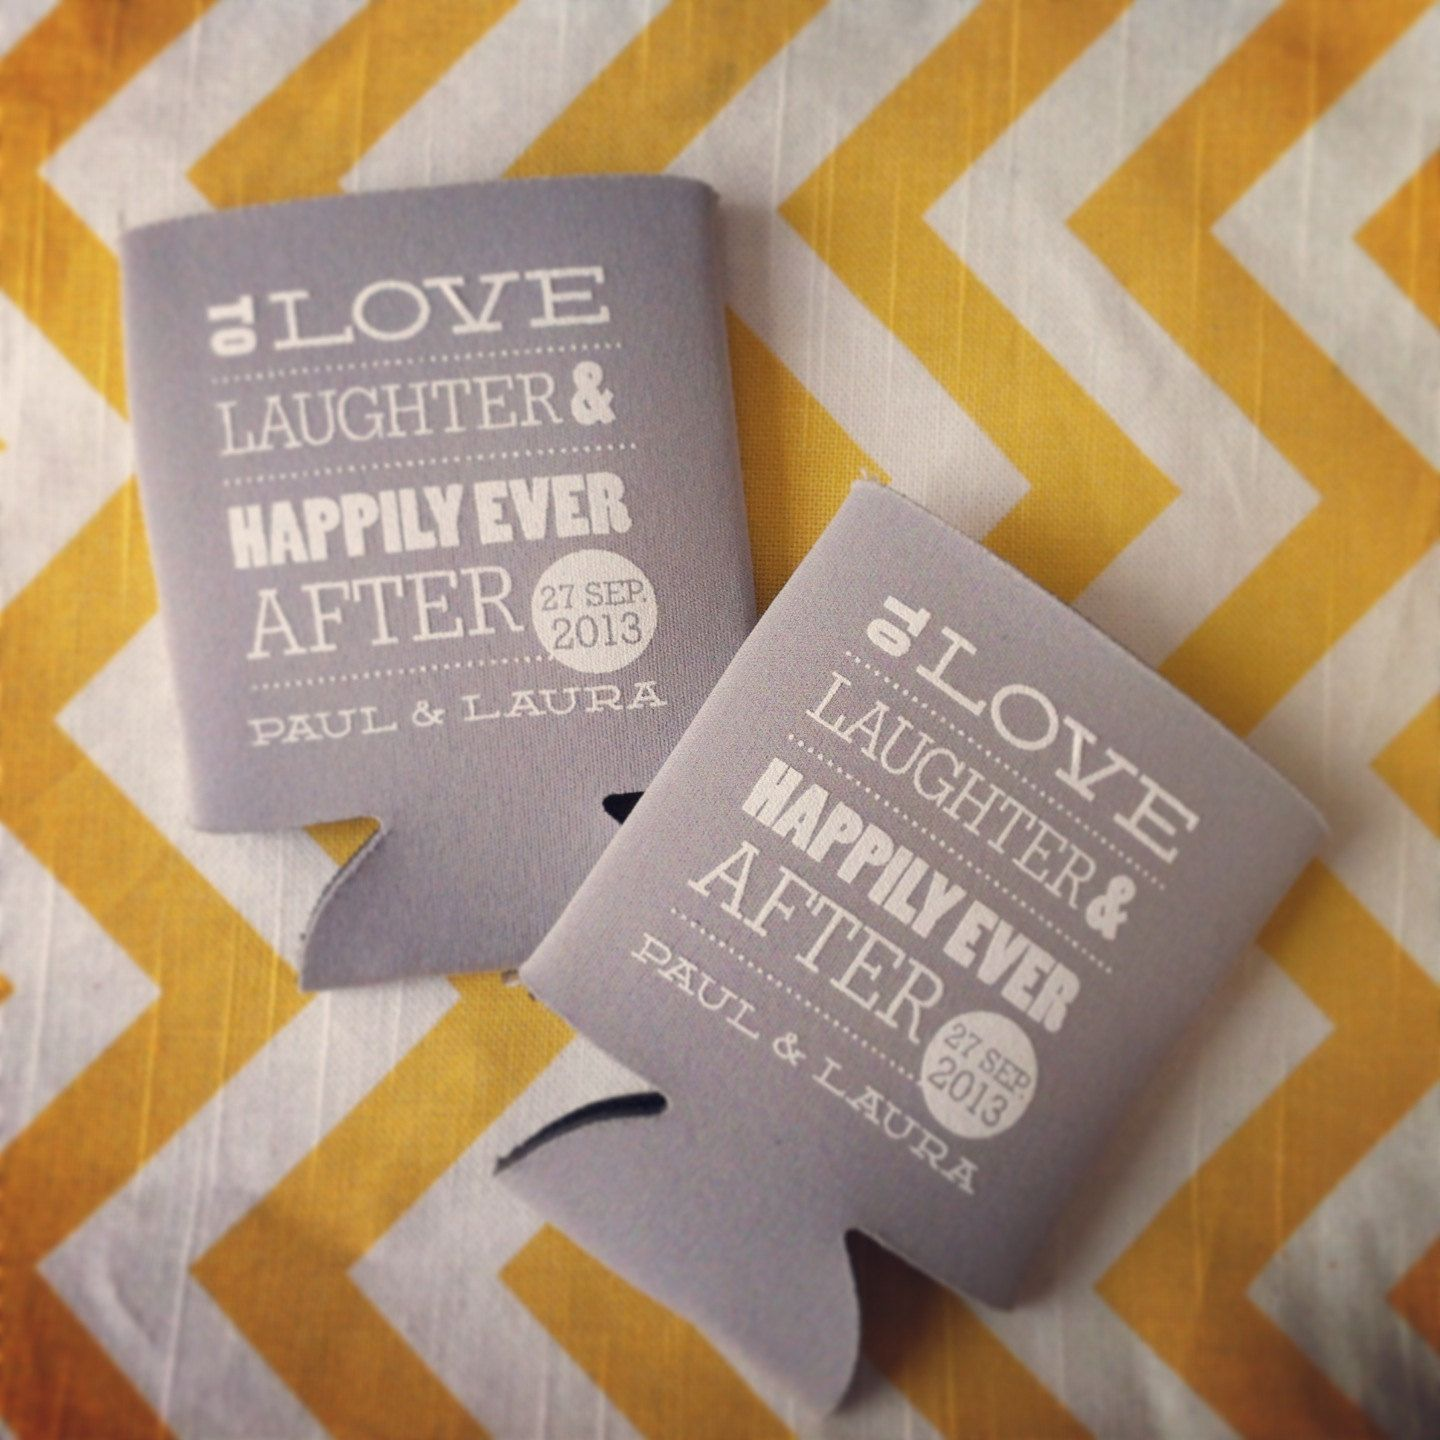 200 To Love Laughter and Happily Ever After Wedding Koozies